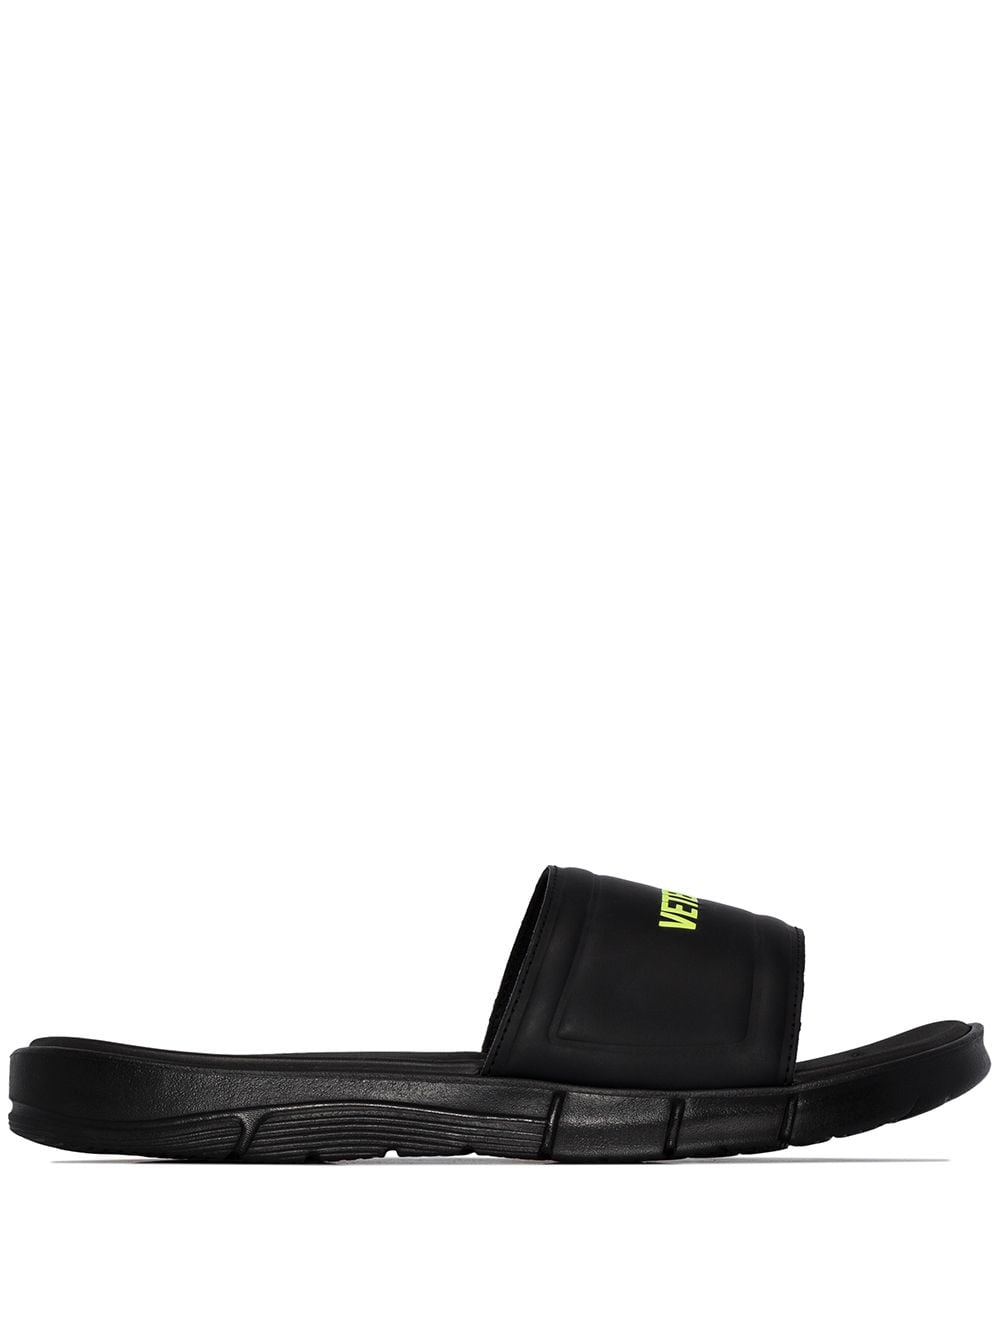 VETEMENTS logo sliders black